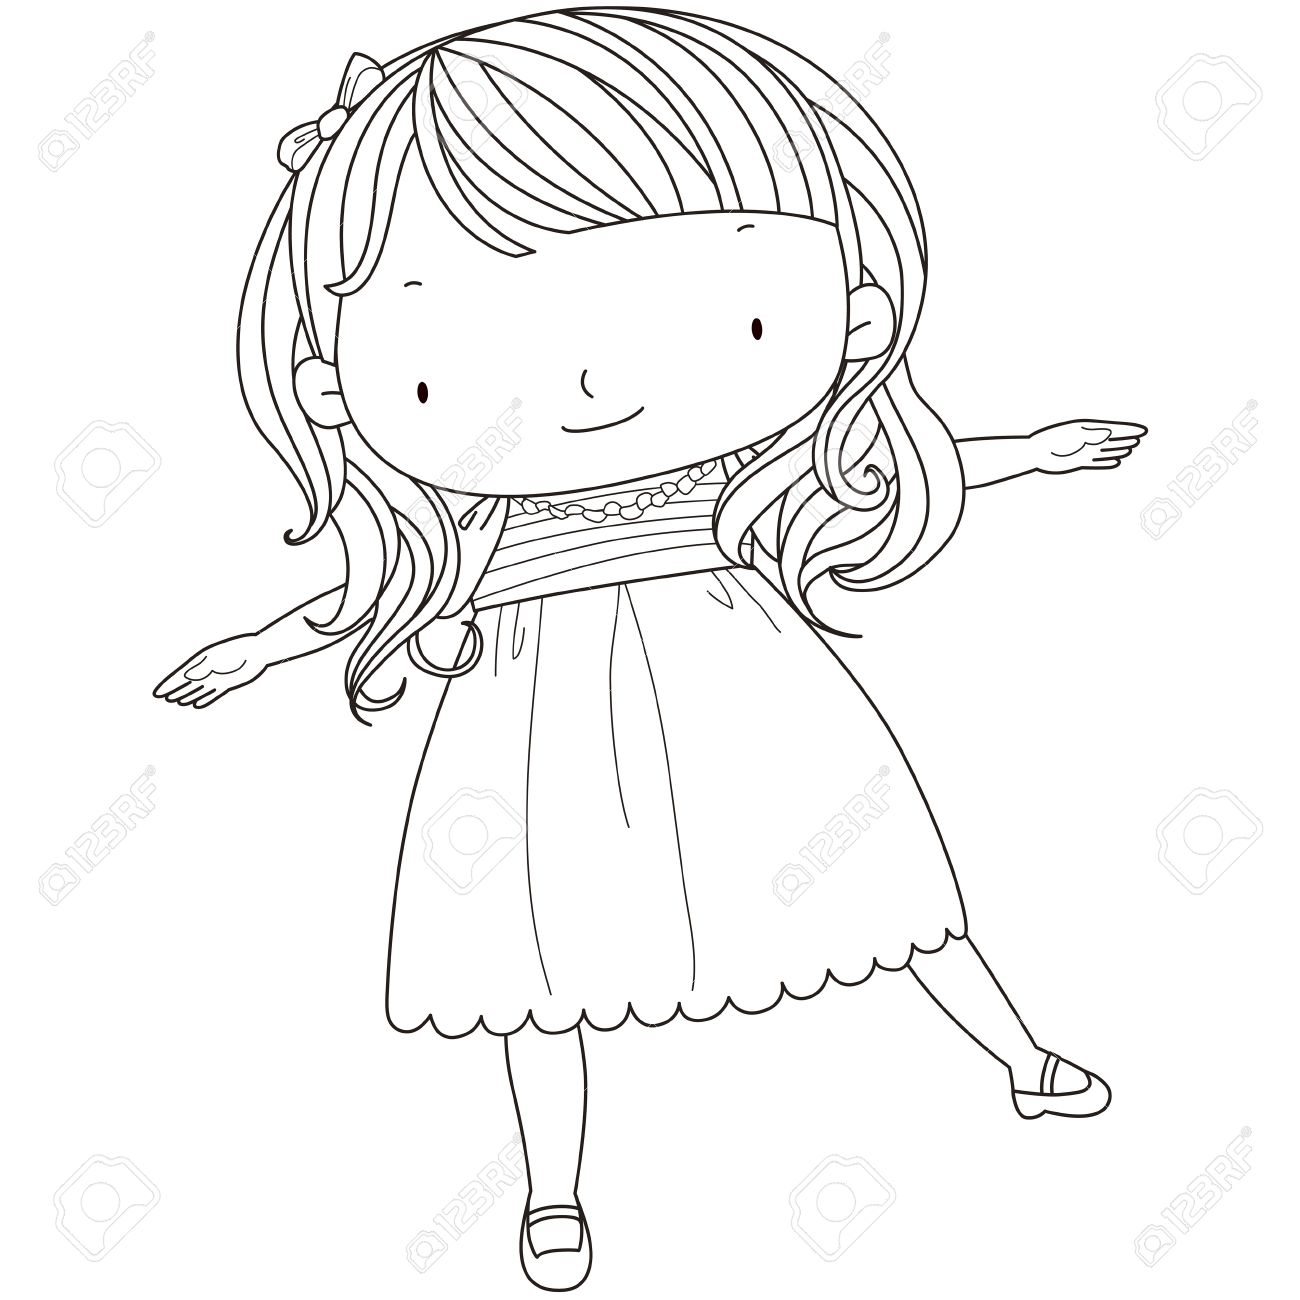 1300x1300 Black And White Cute Girl Drawing